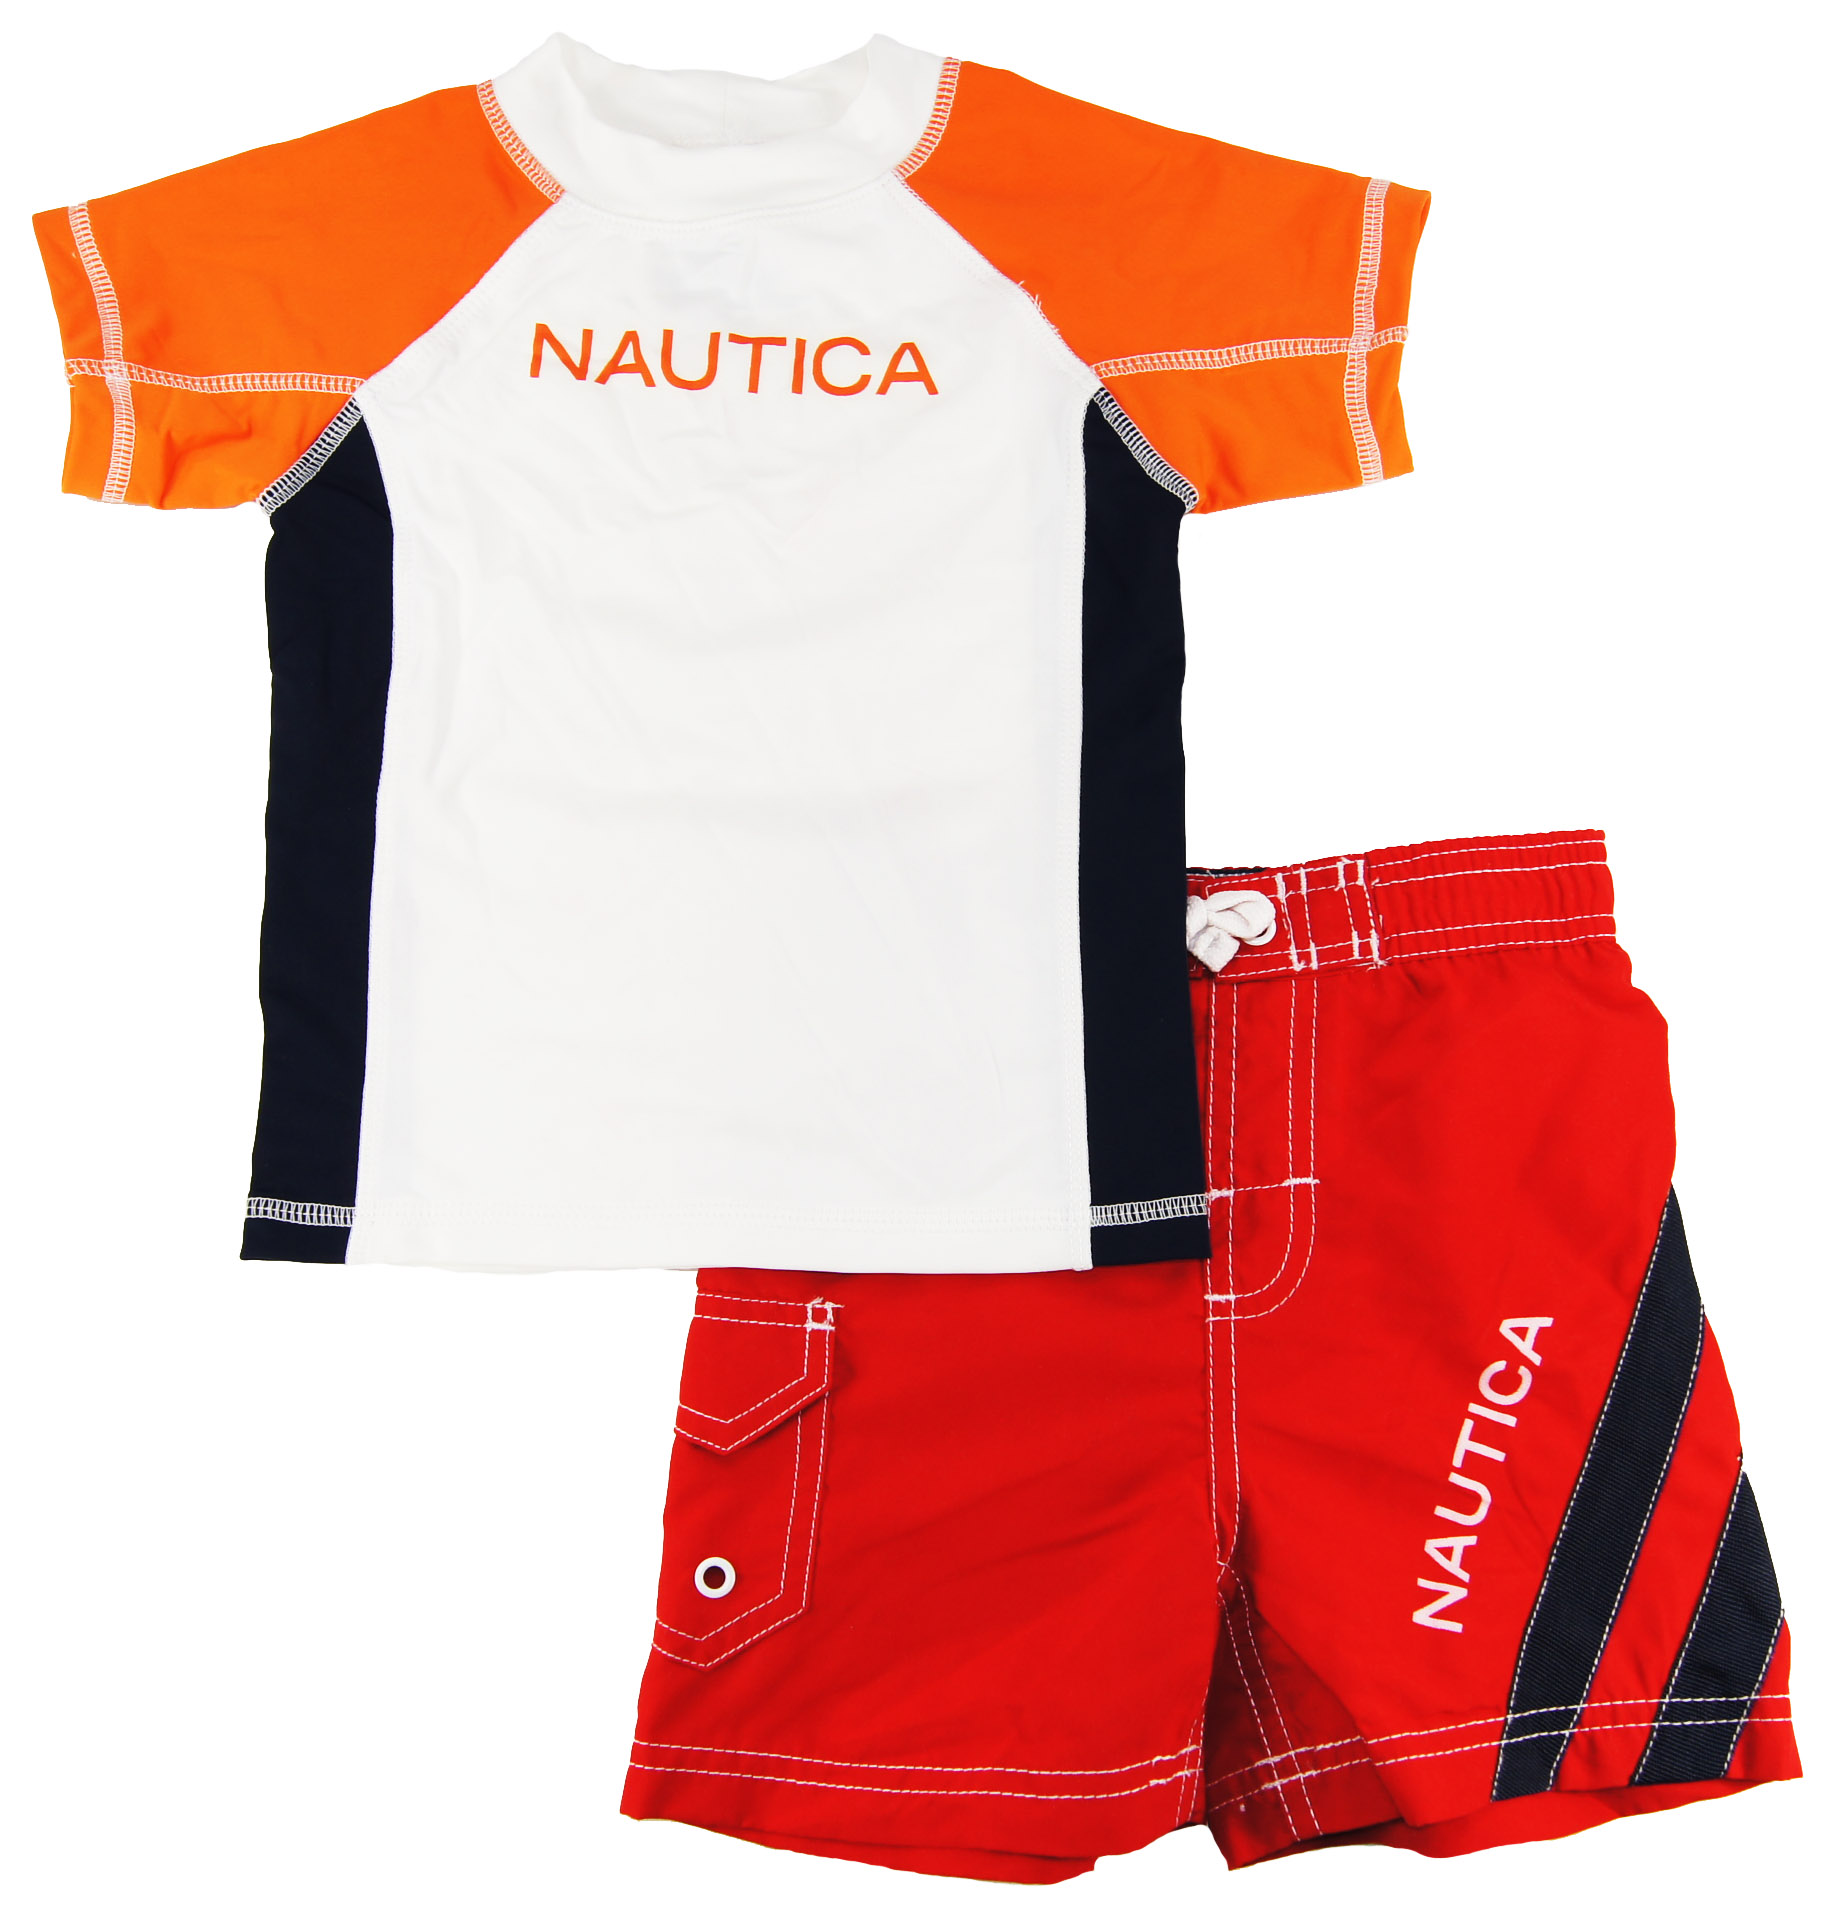 Nautica Infant Boys Orange/Red Print Rash Guard Swim Top/Shorts 2 Pc Set 121824M at Sears.com